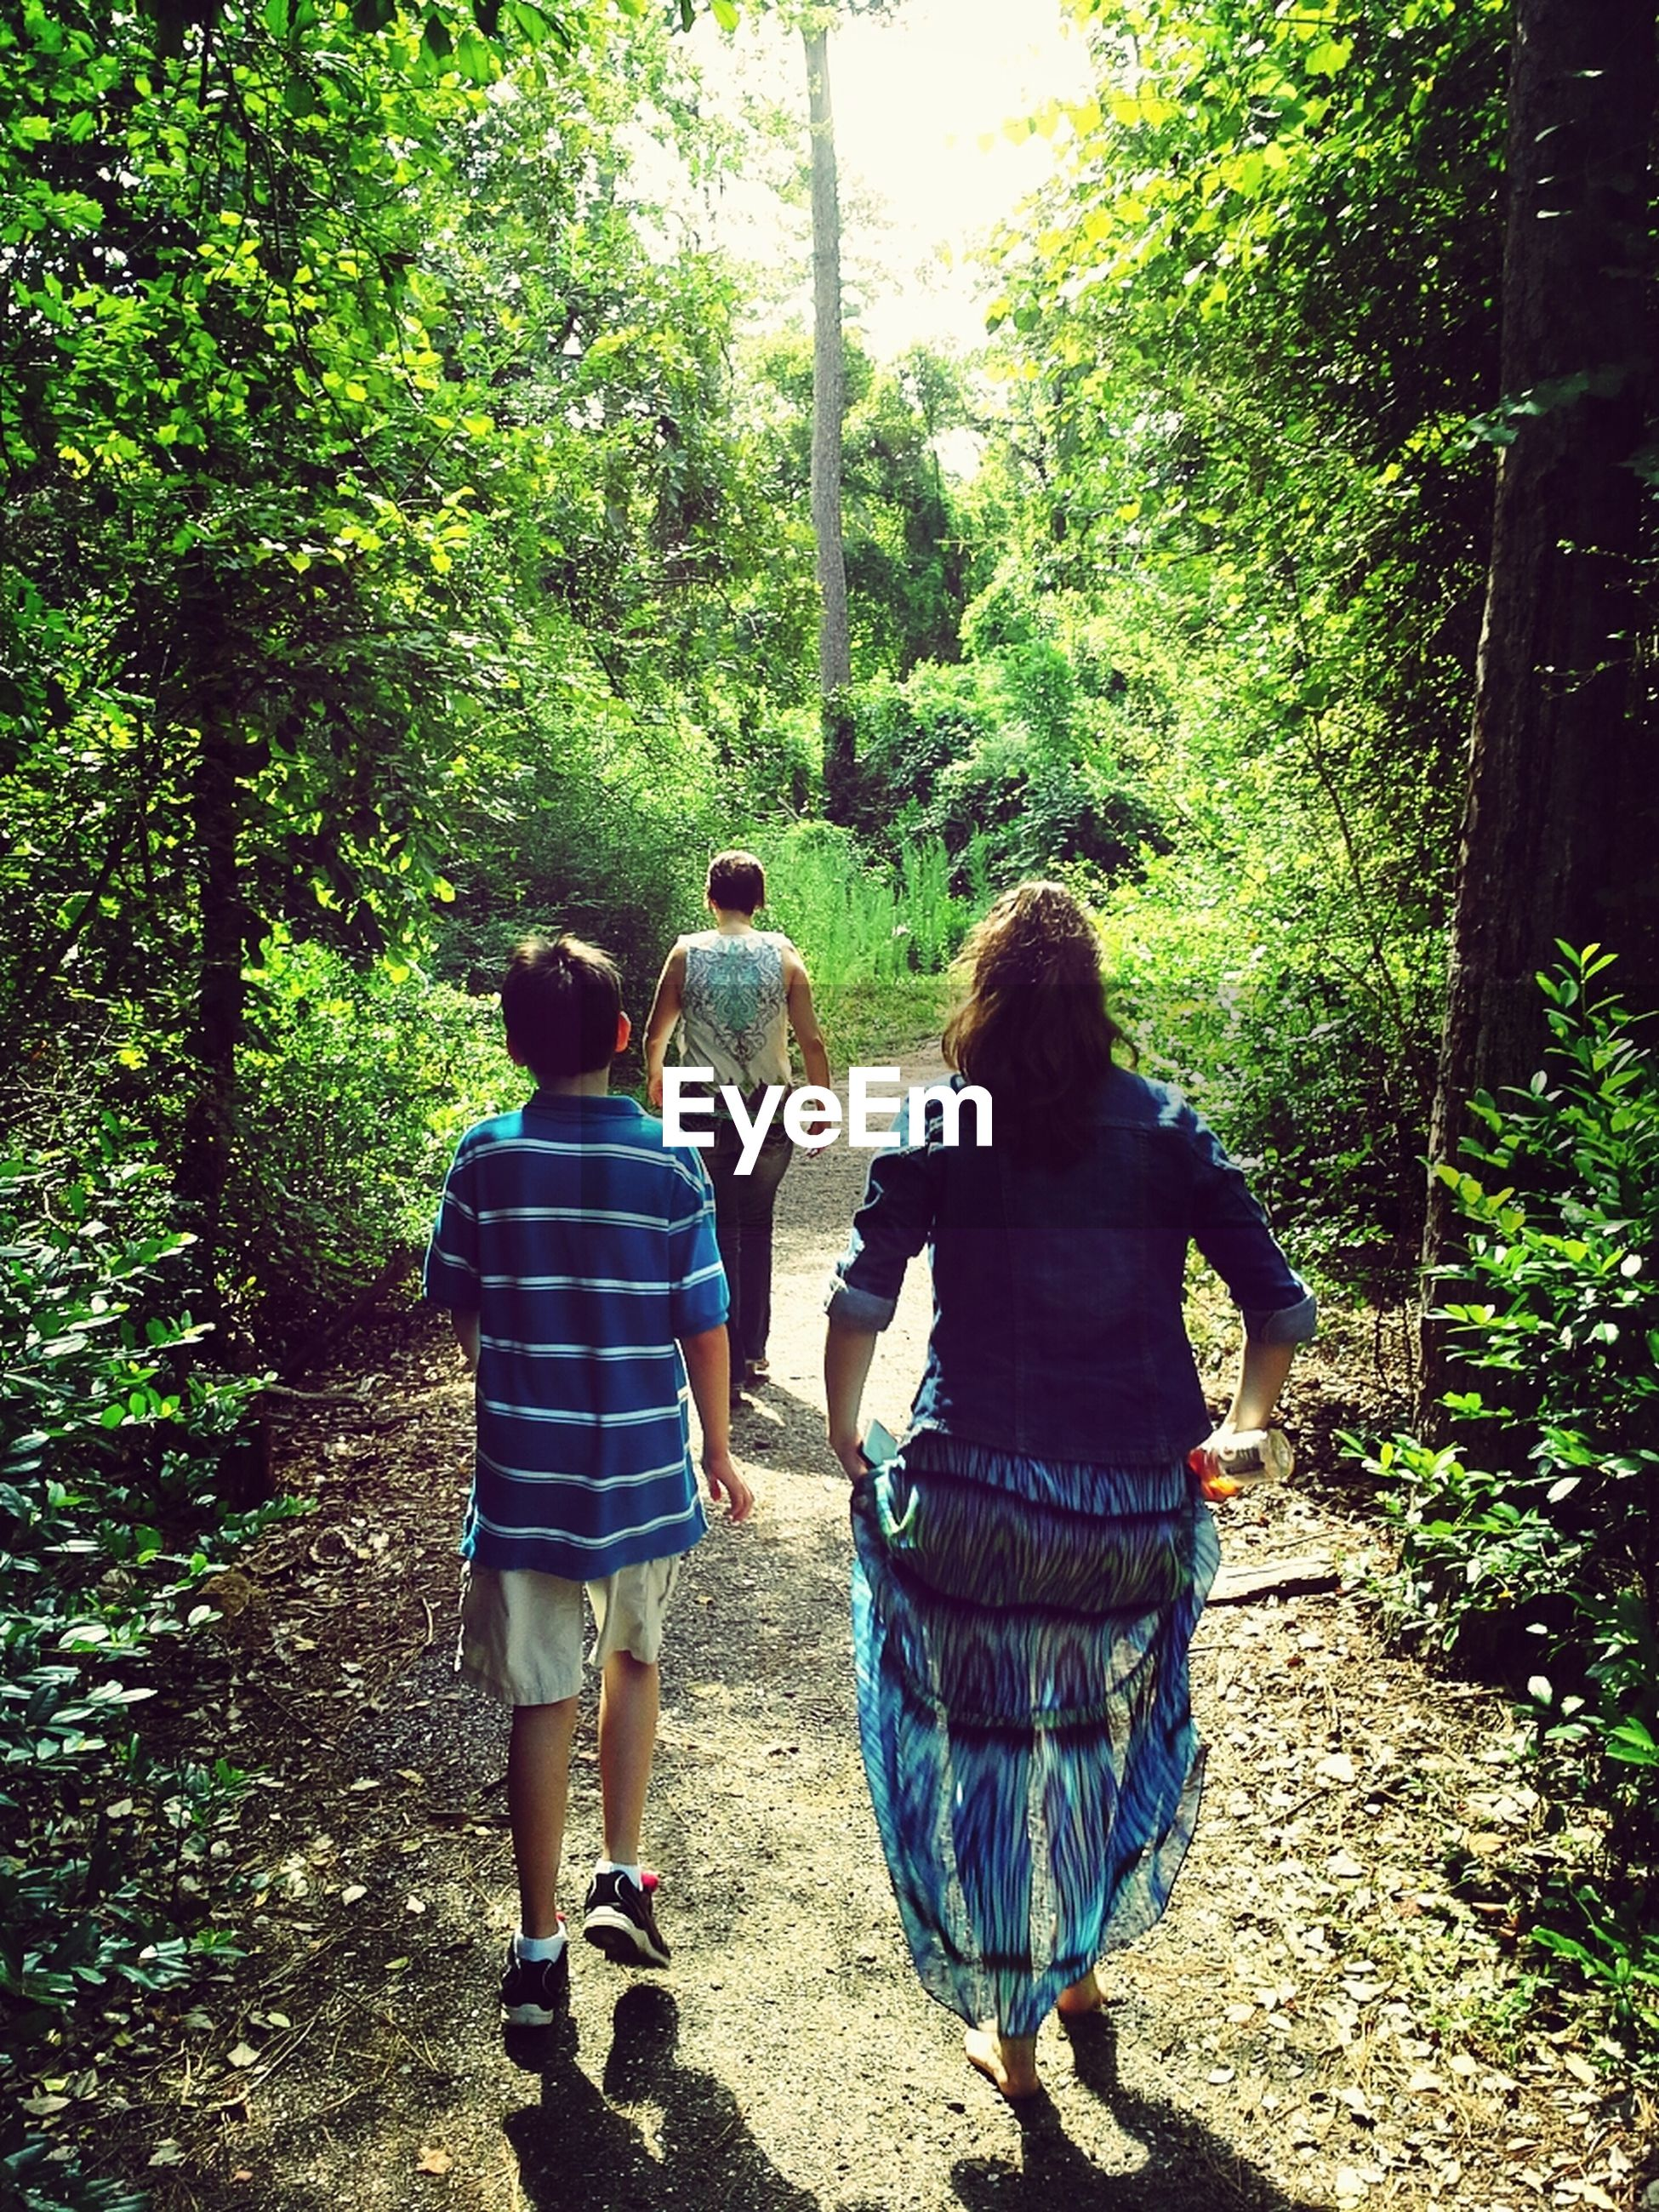 tree, lifestyles, rear view, leisure activity, full length, togetherness, casual clothing, bonding, men, love, walking, boys, person, forest, childhood, green color, growth, family